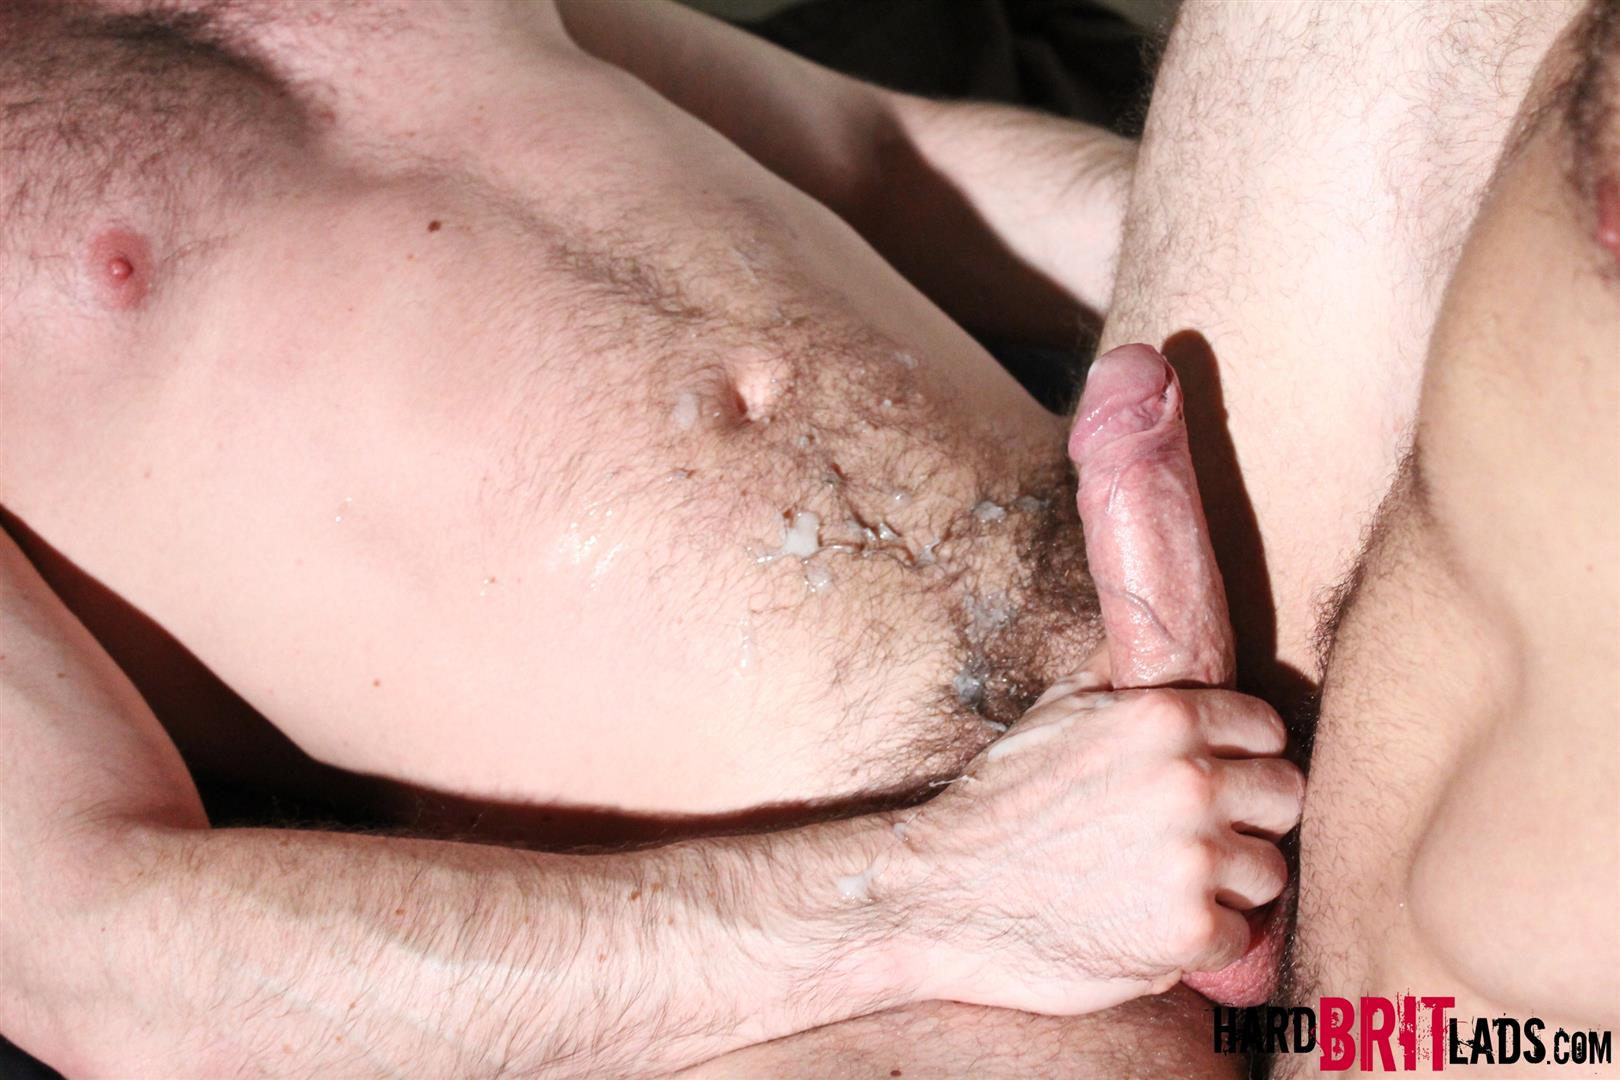 Hard Brit Lads Craig Daniel Scott Hunter Hairy Muscle Hunks With Big Uncut Cocks Fucking Amateur Gay Porn 18